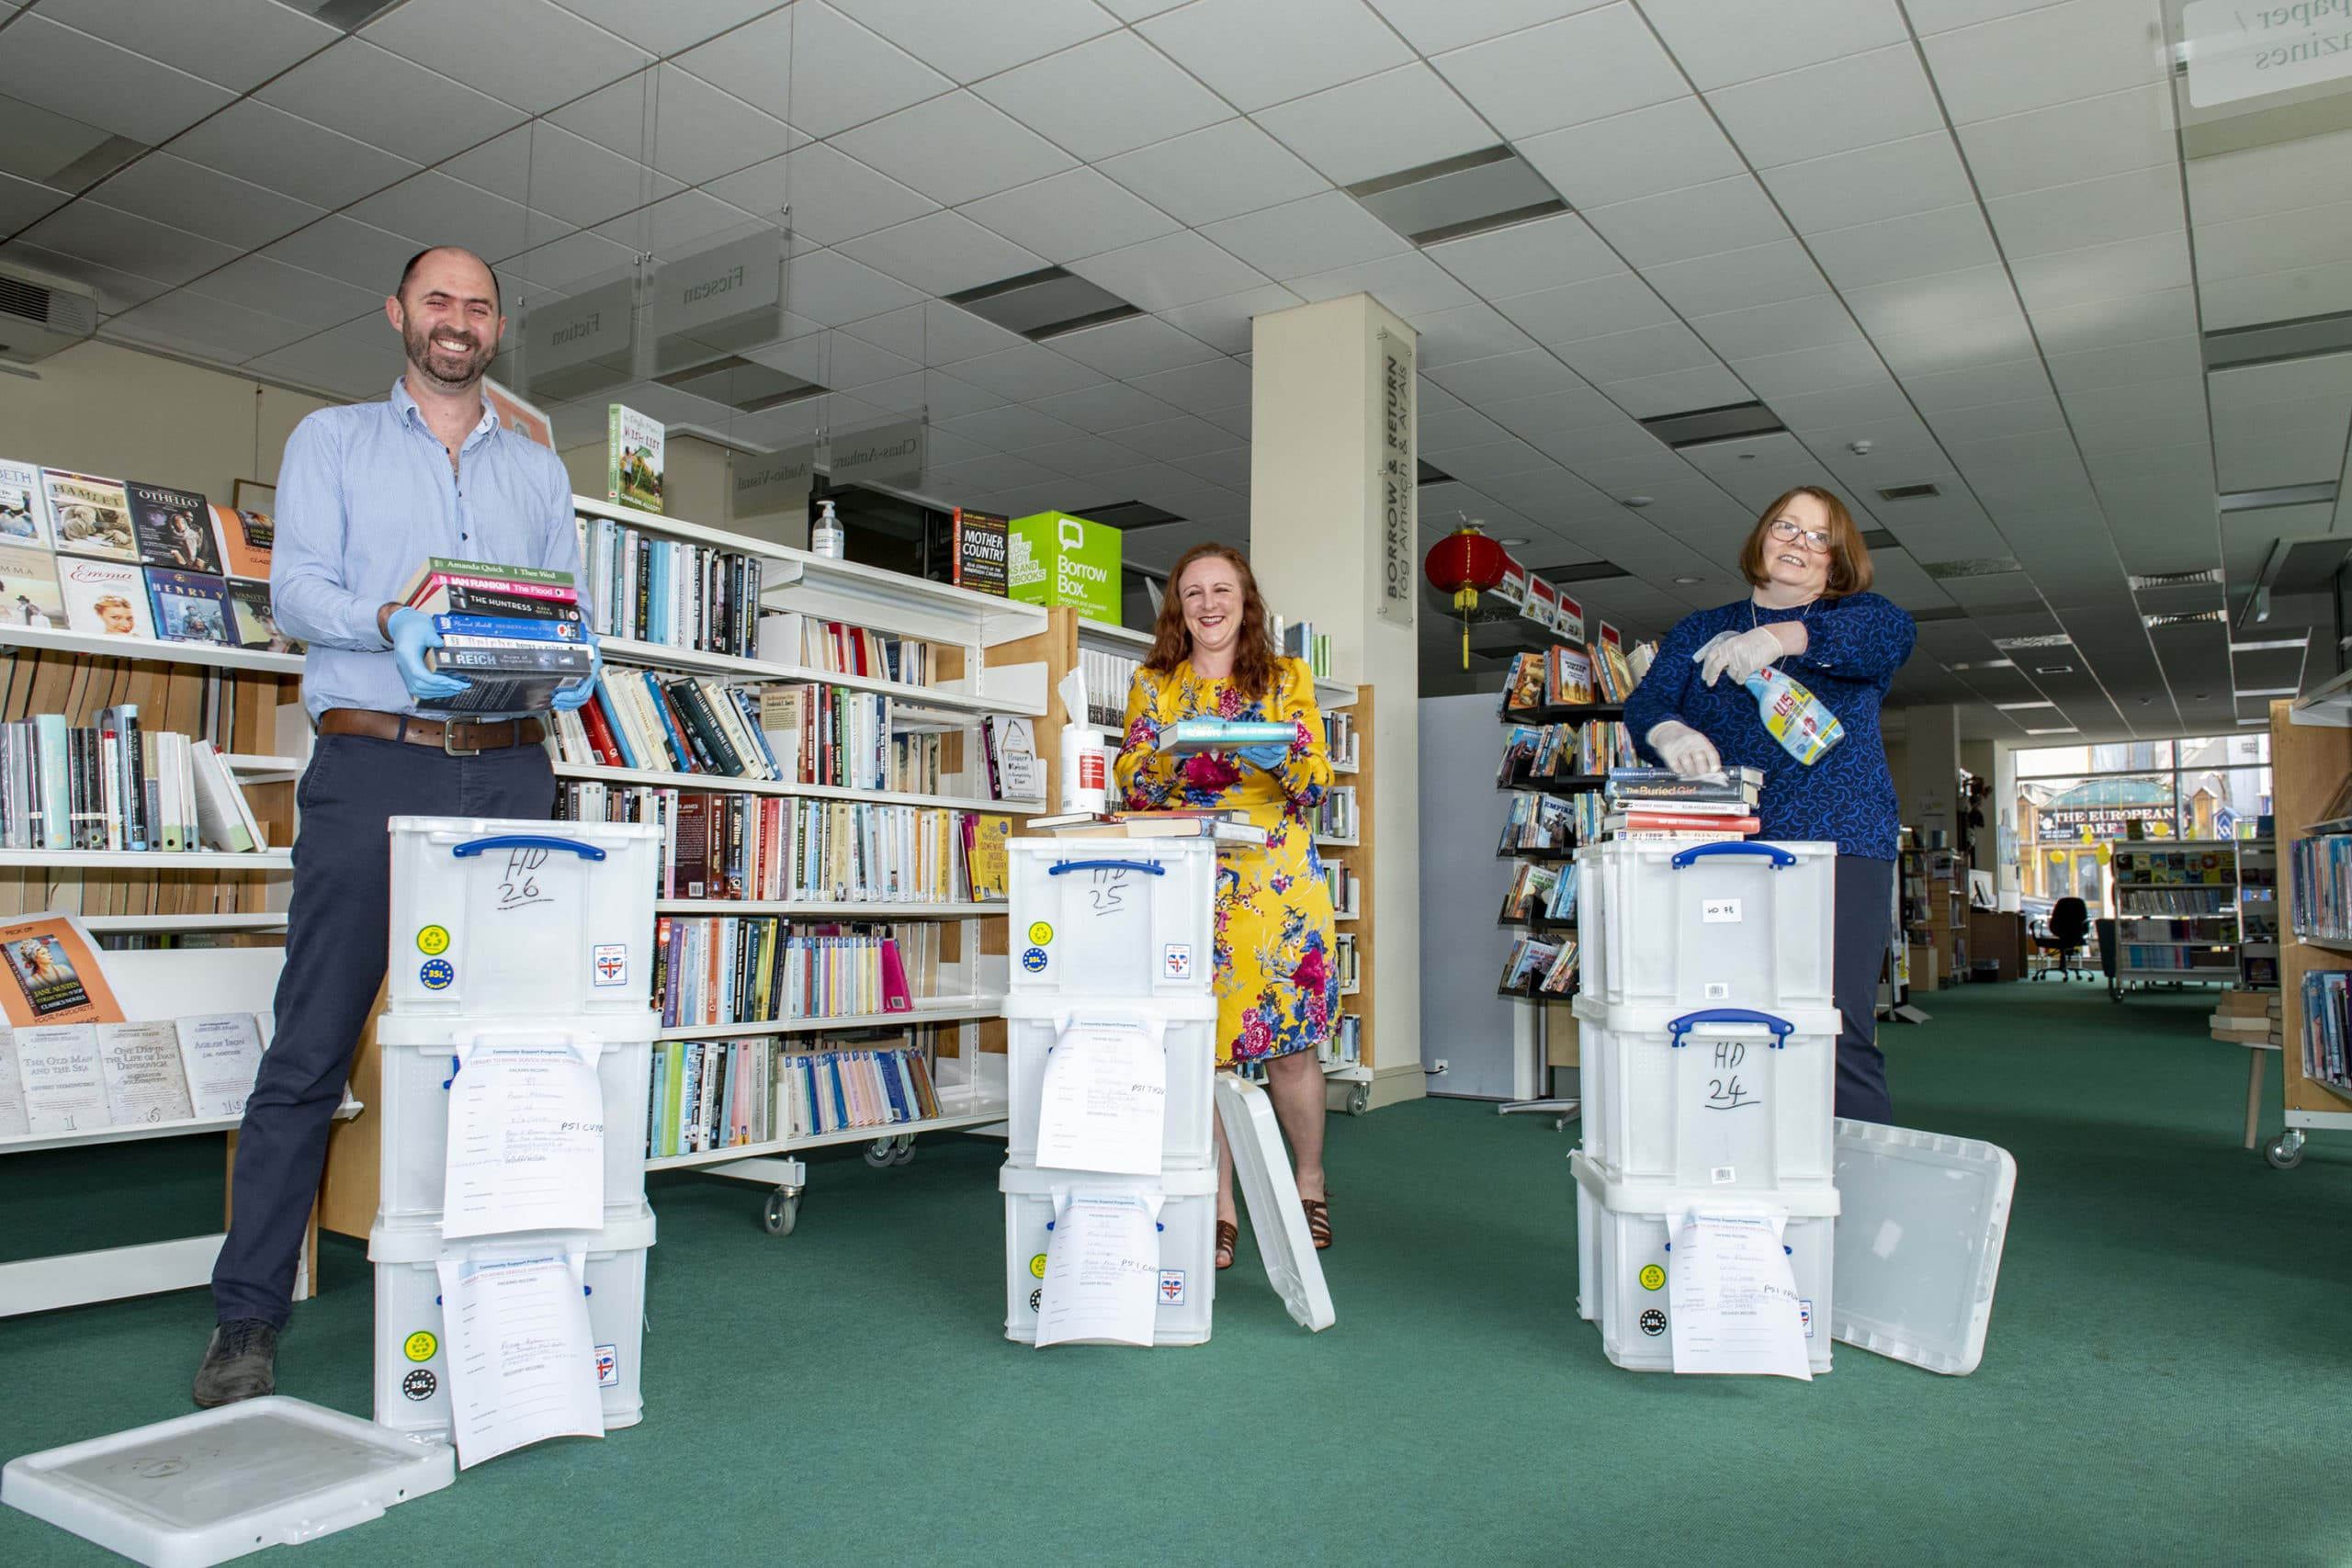 Cork County Council expands successful library delivery service